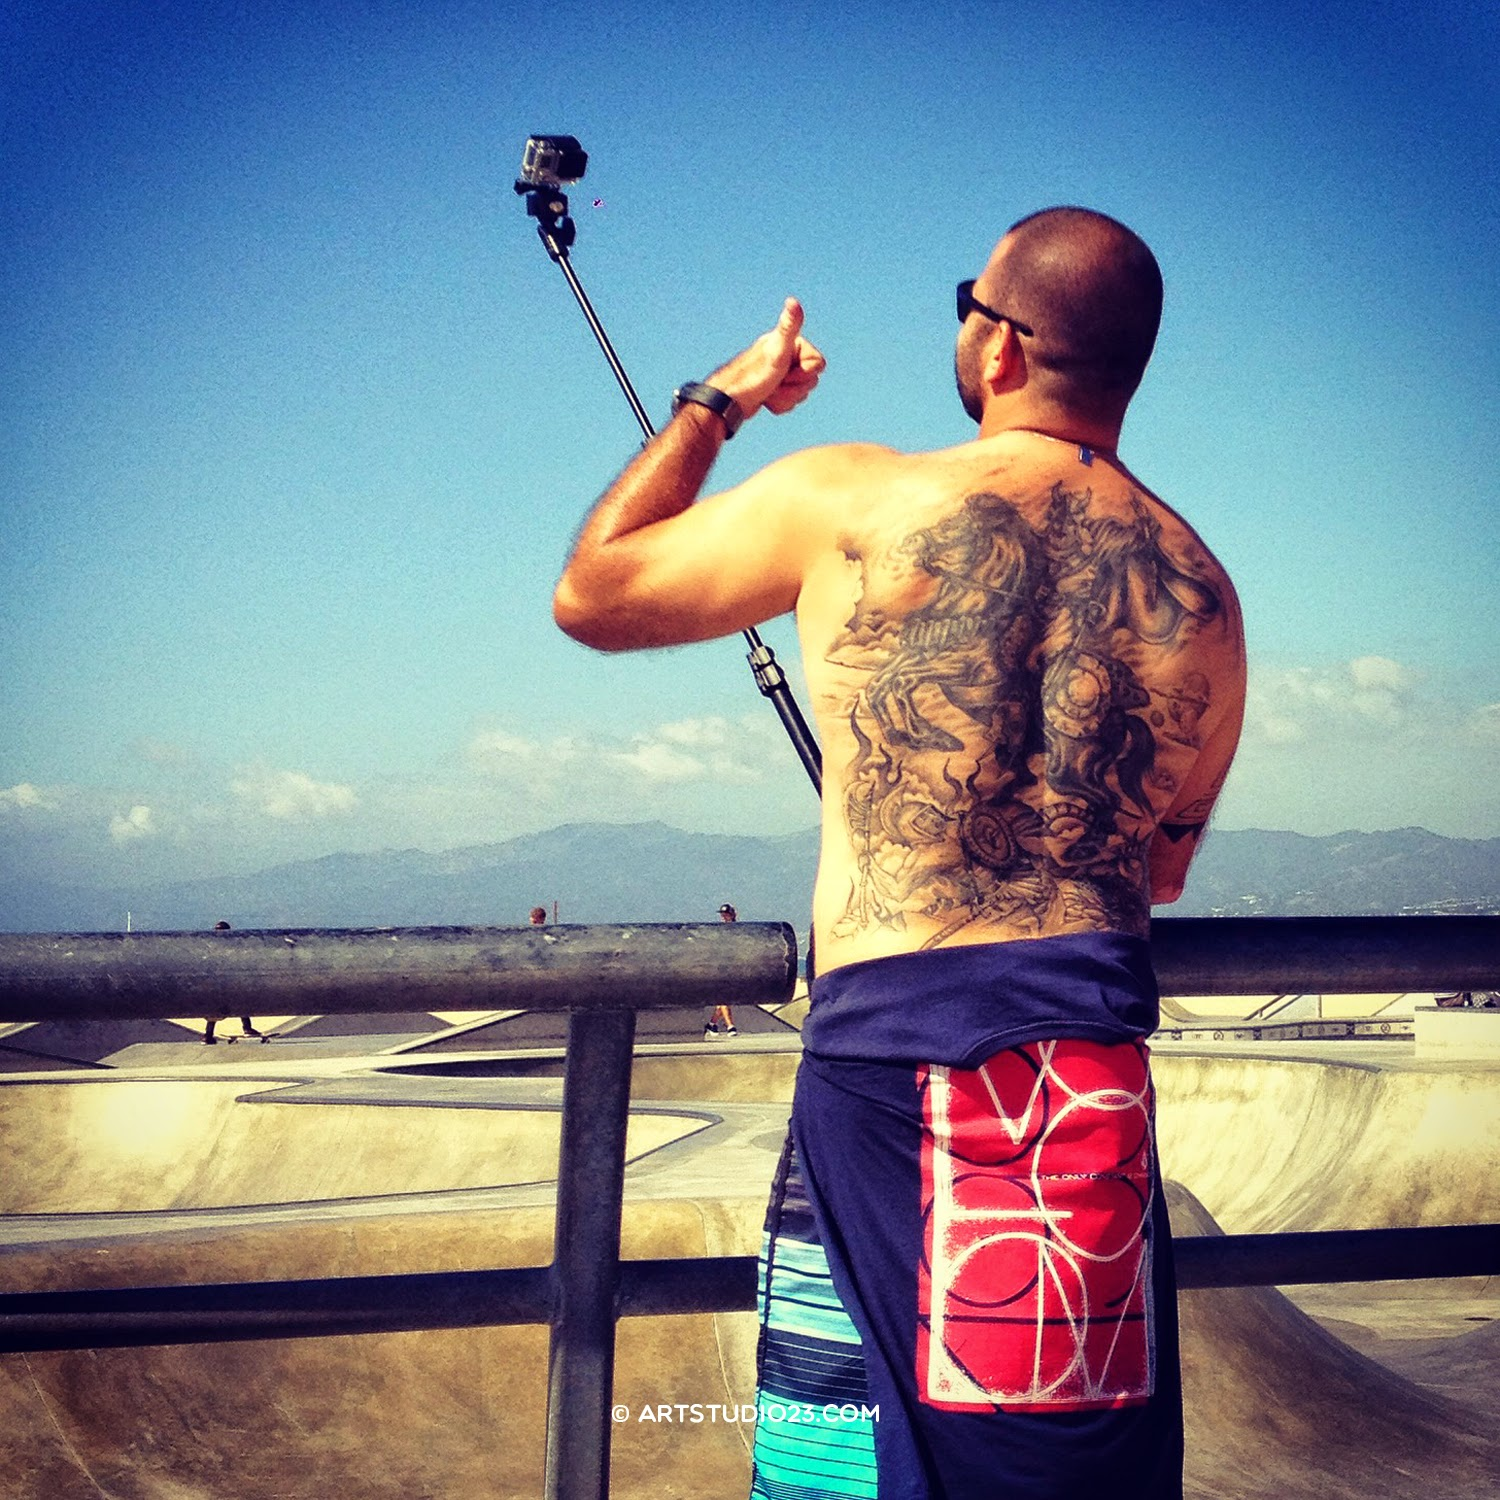 Tattoo back and go pro Los Angeles tourist